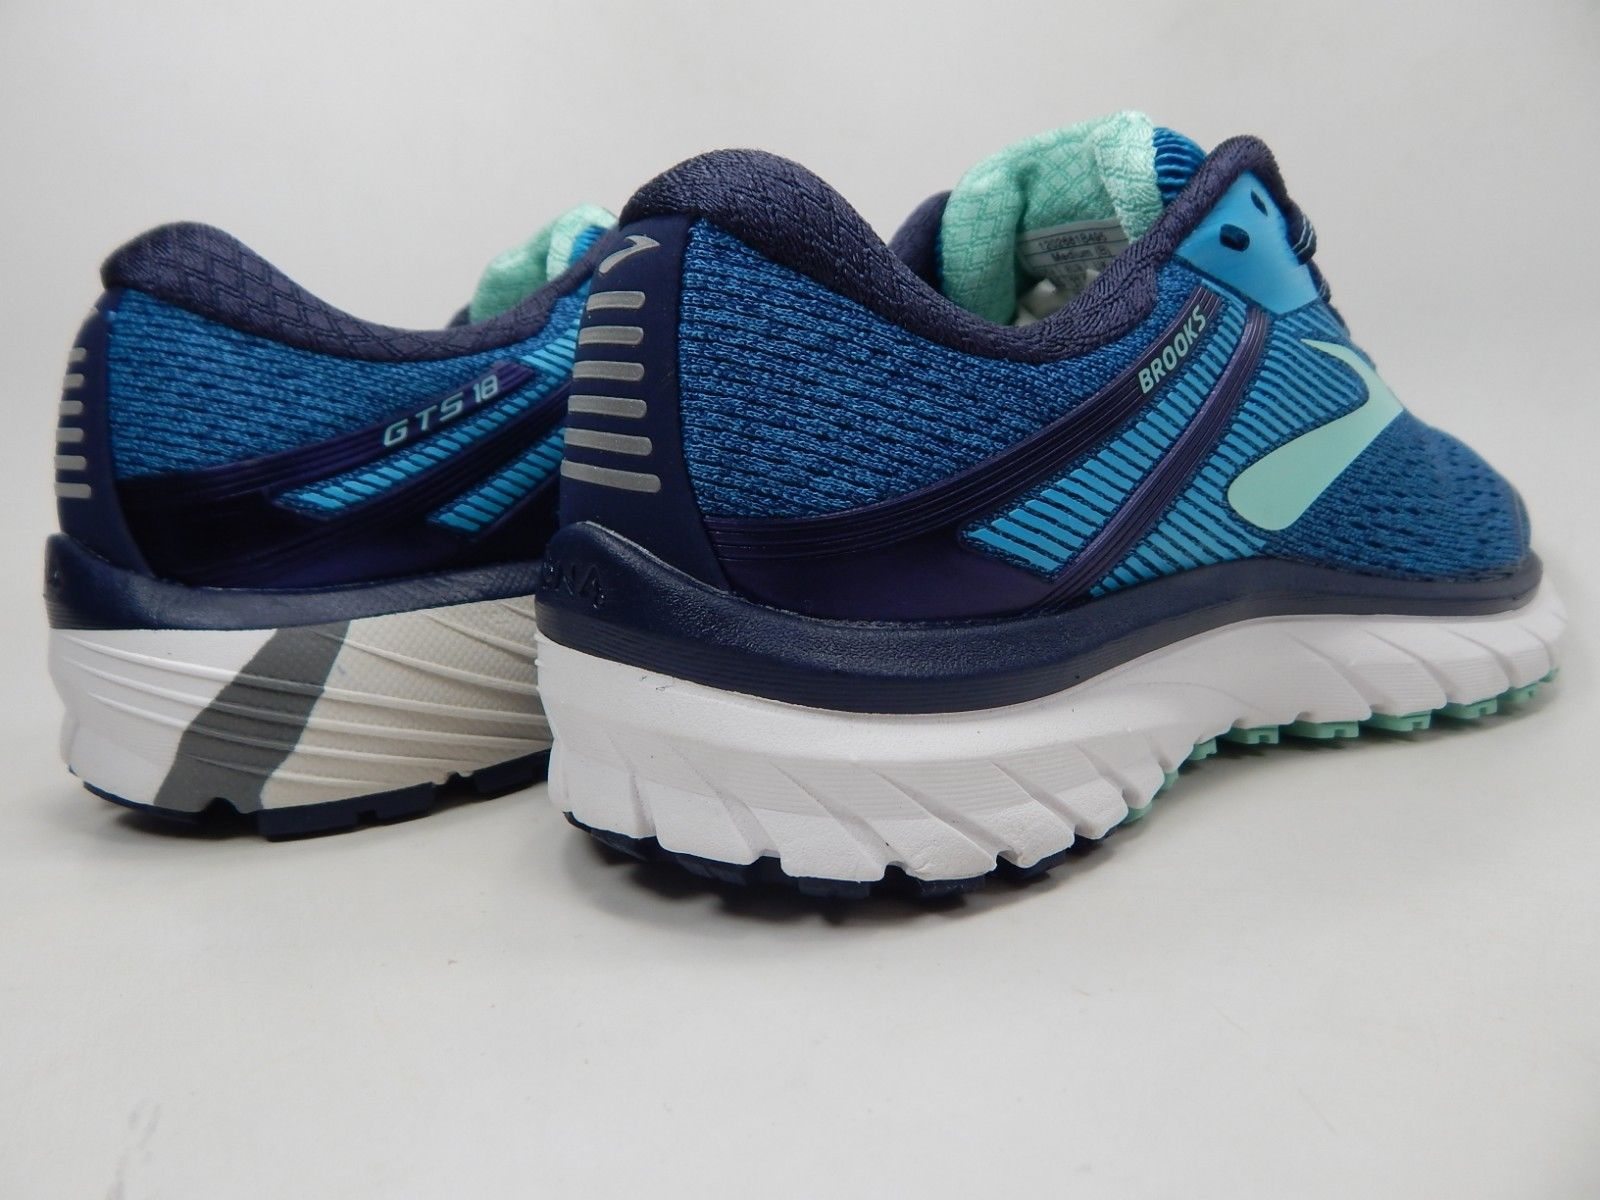 Brooks GTS 18 Size US 6.5 M (B) EU 37.5 Women's Running Shoes Blue 1202681B495